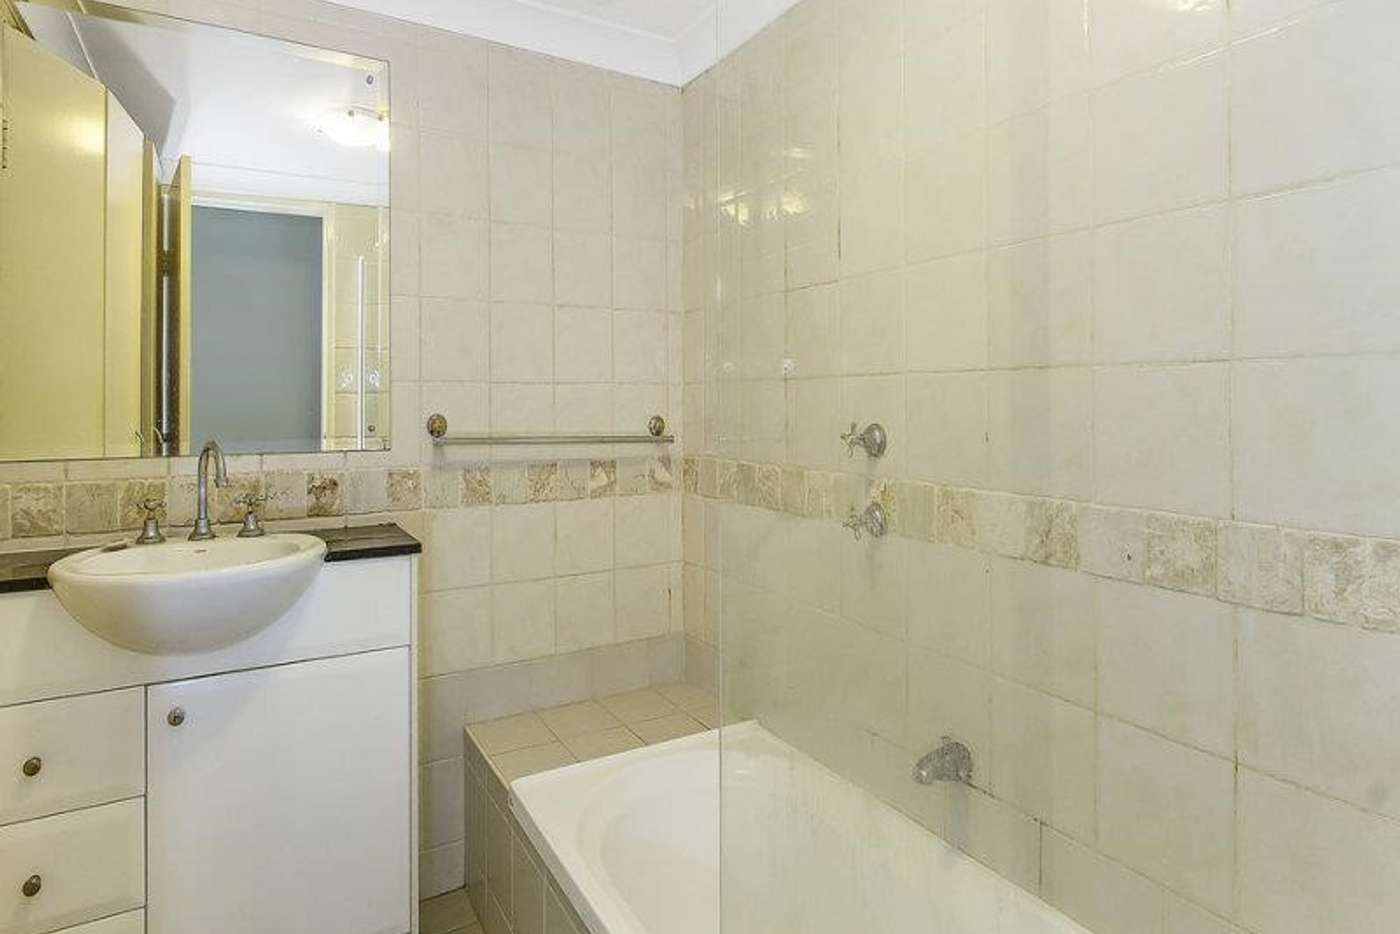 Seventh view of Homely unit listing, 9/92 John Whiteway Drive, Gosford NSW 2250